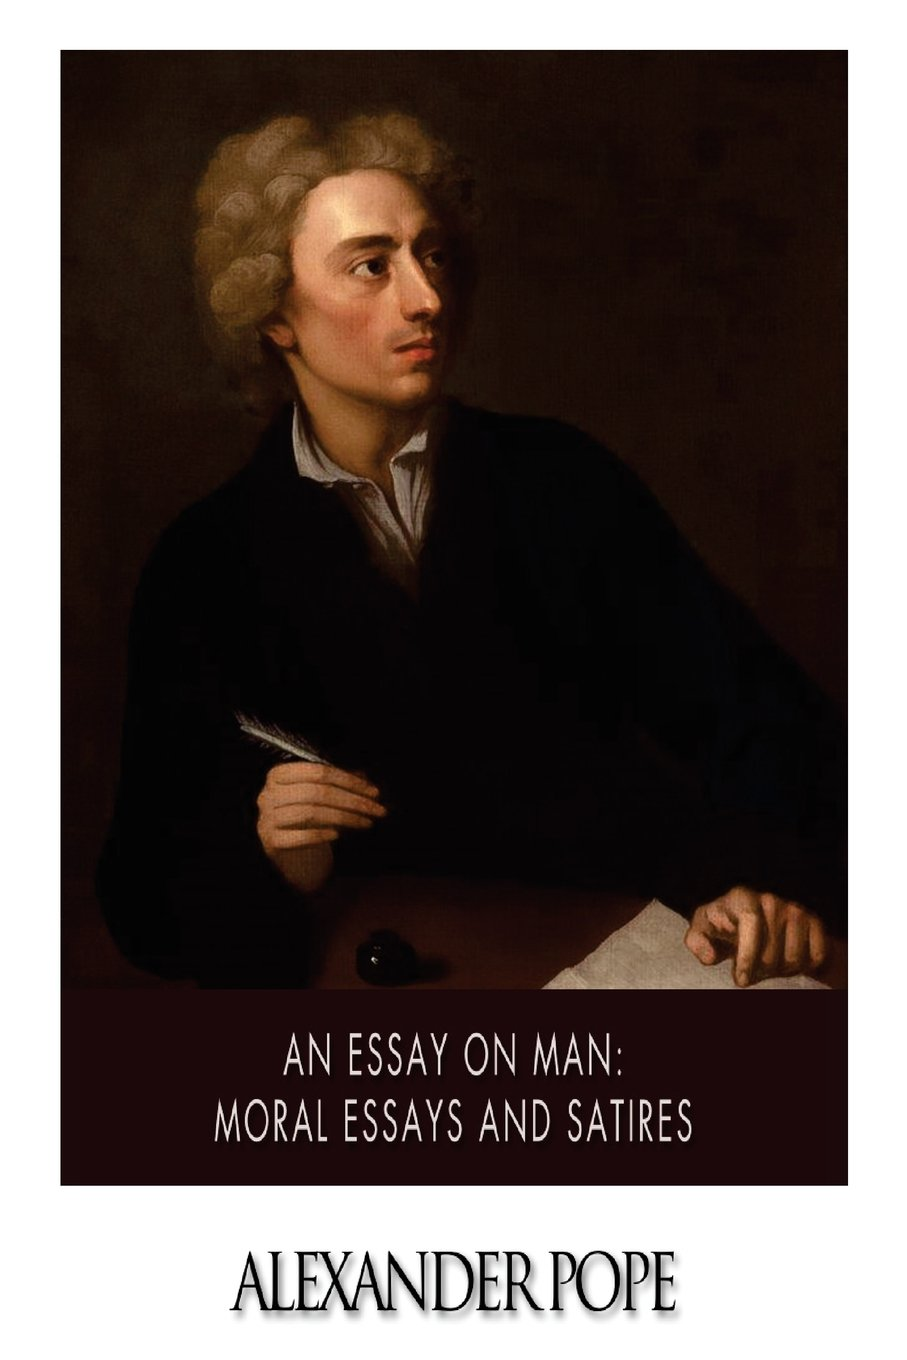 alexander pope essay on